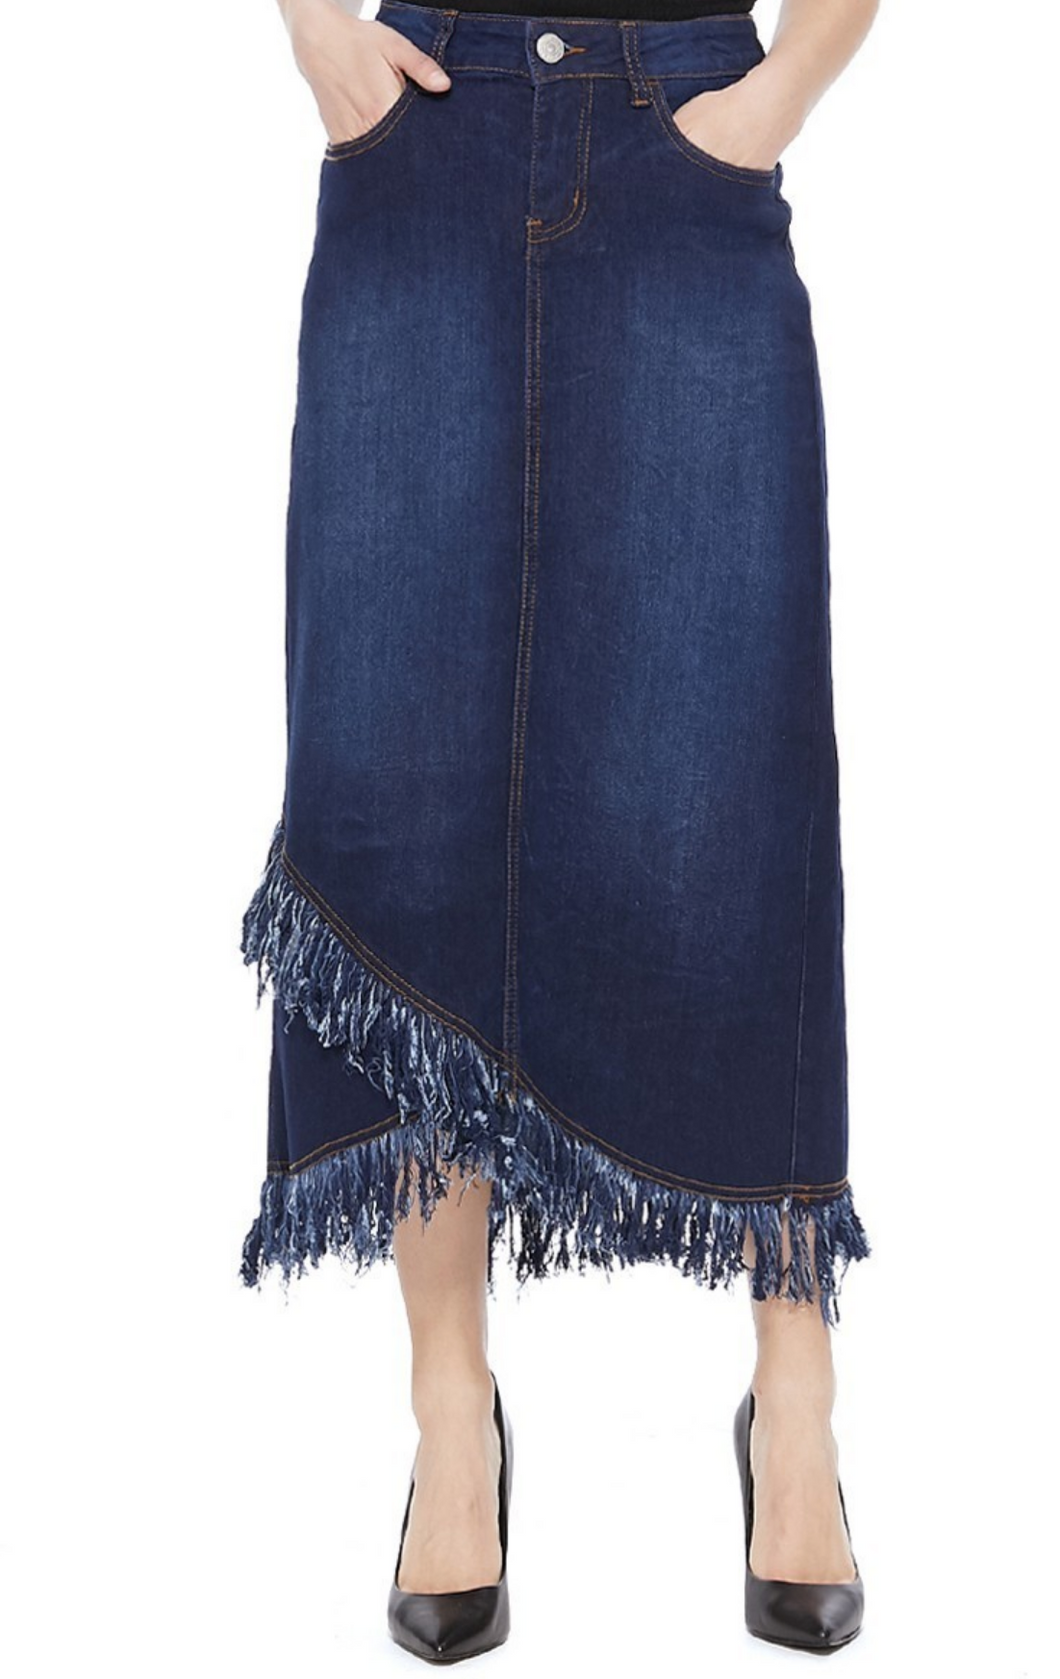 Fringe Denim Skirt